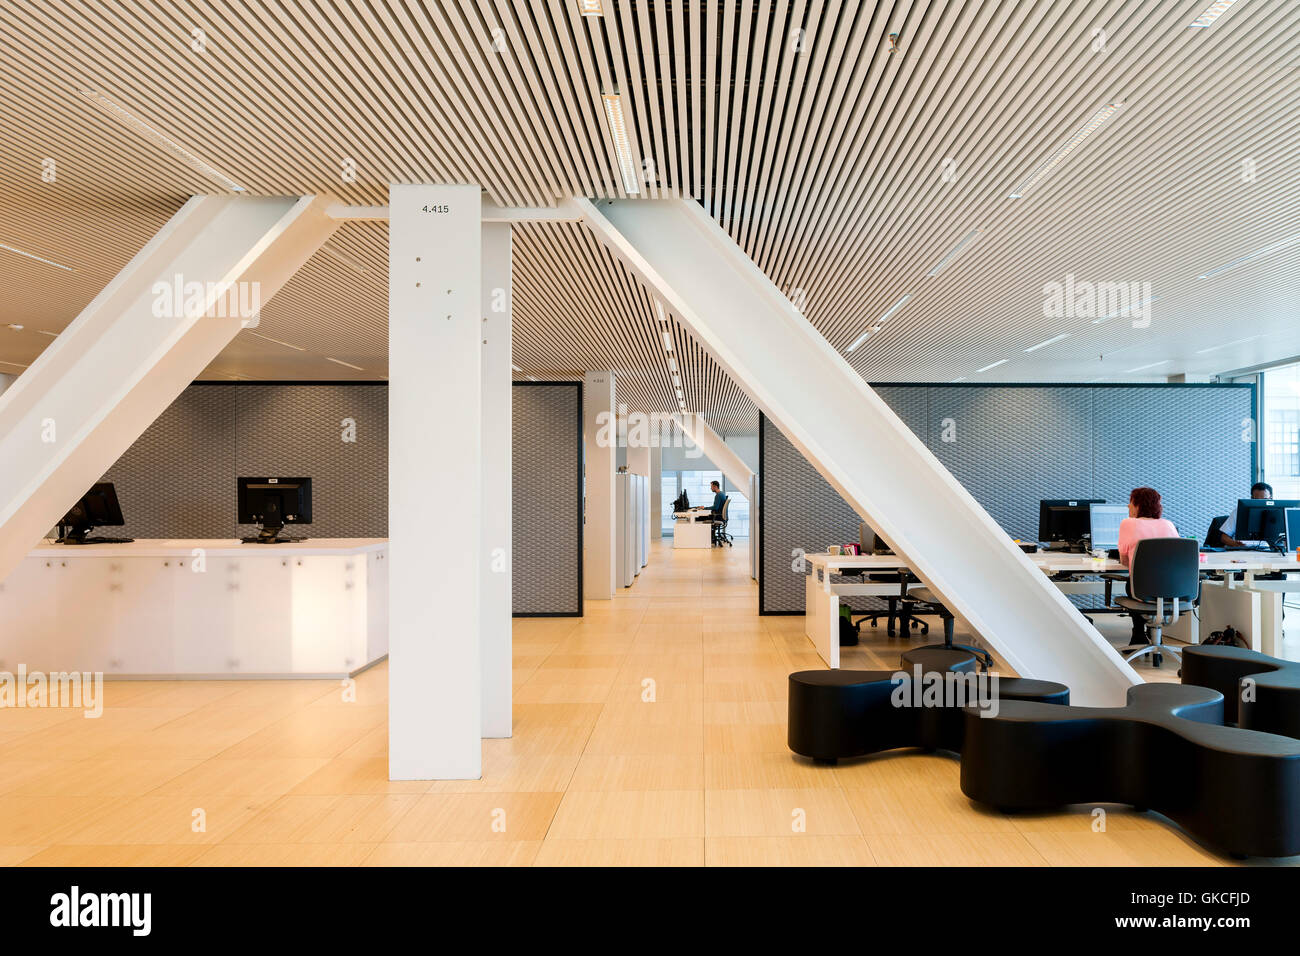 Interior view of office area showing integrated structural pillars.  Timmerhuis, Rotterdam, Netherlands. Architect: OMA Rem Koolhaas, 2015